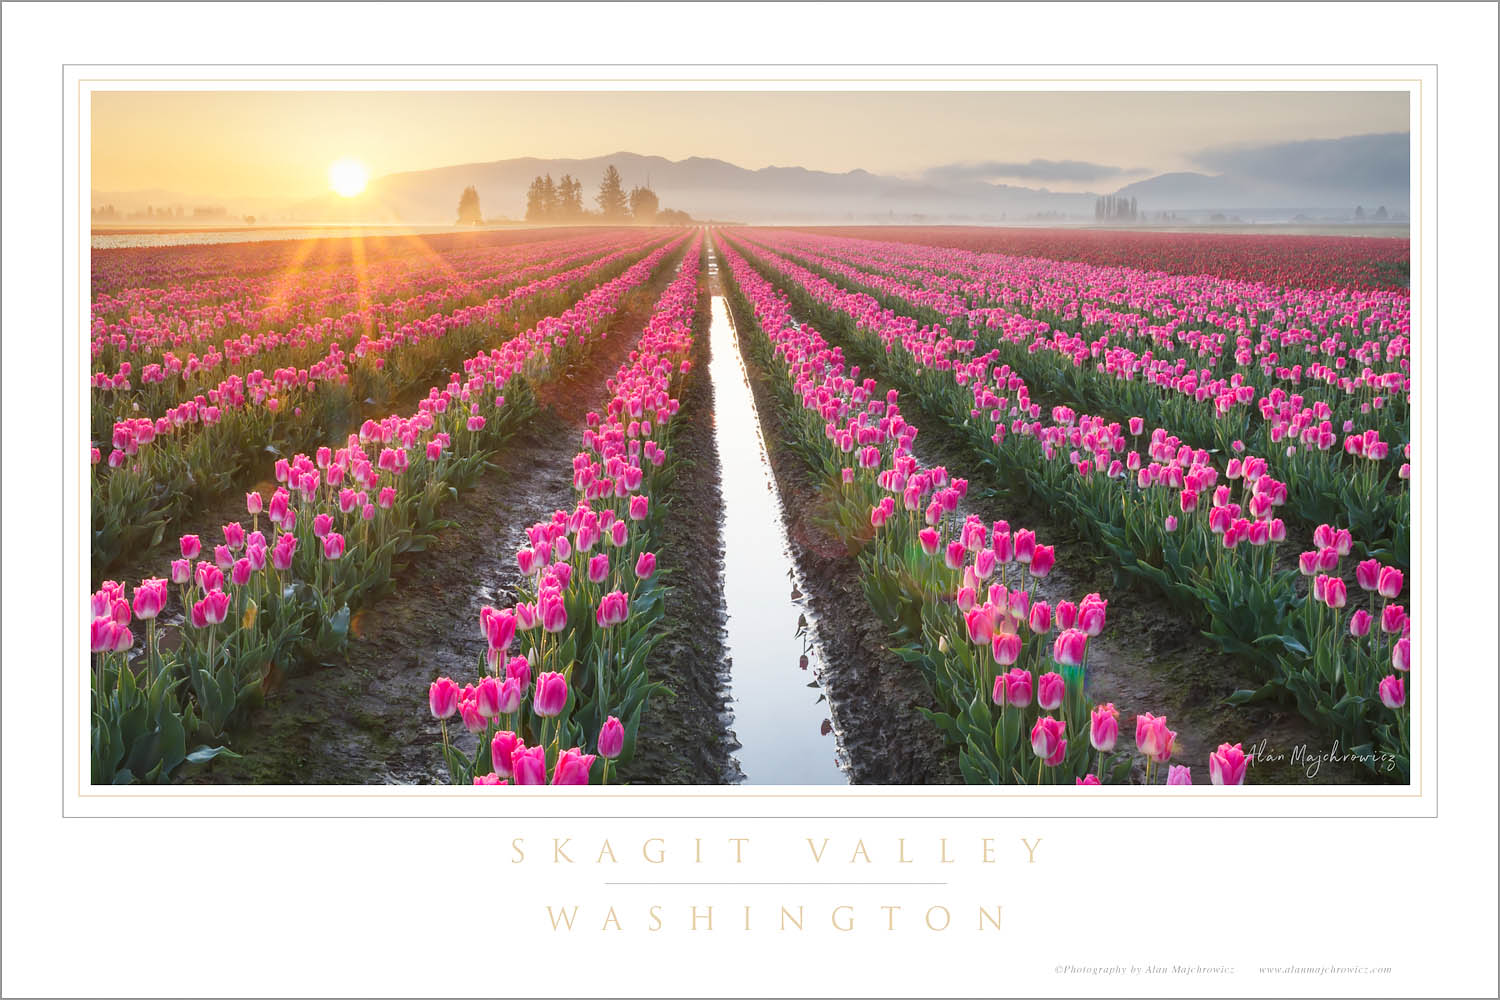 Sunrise over Skagit Valley tulip fields, Washington